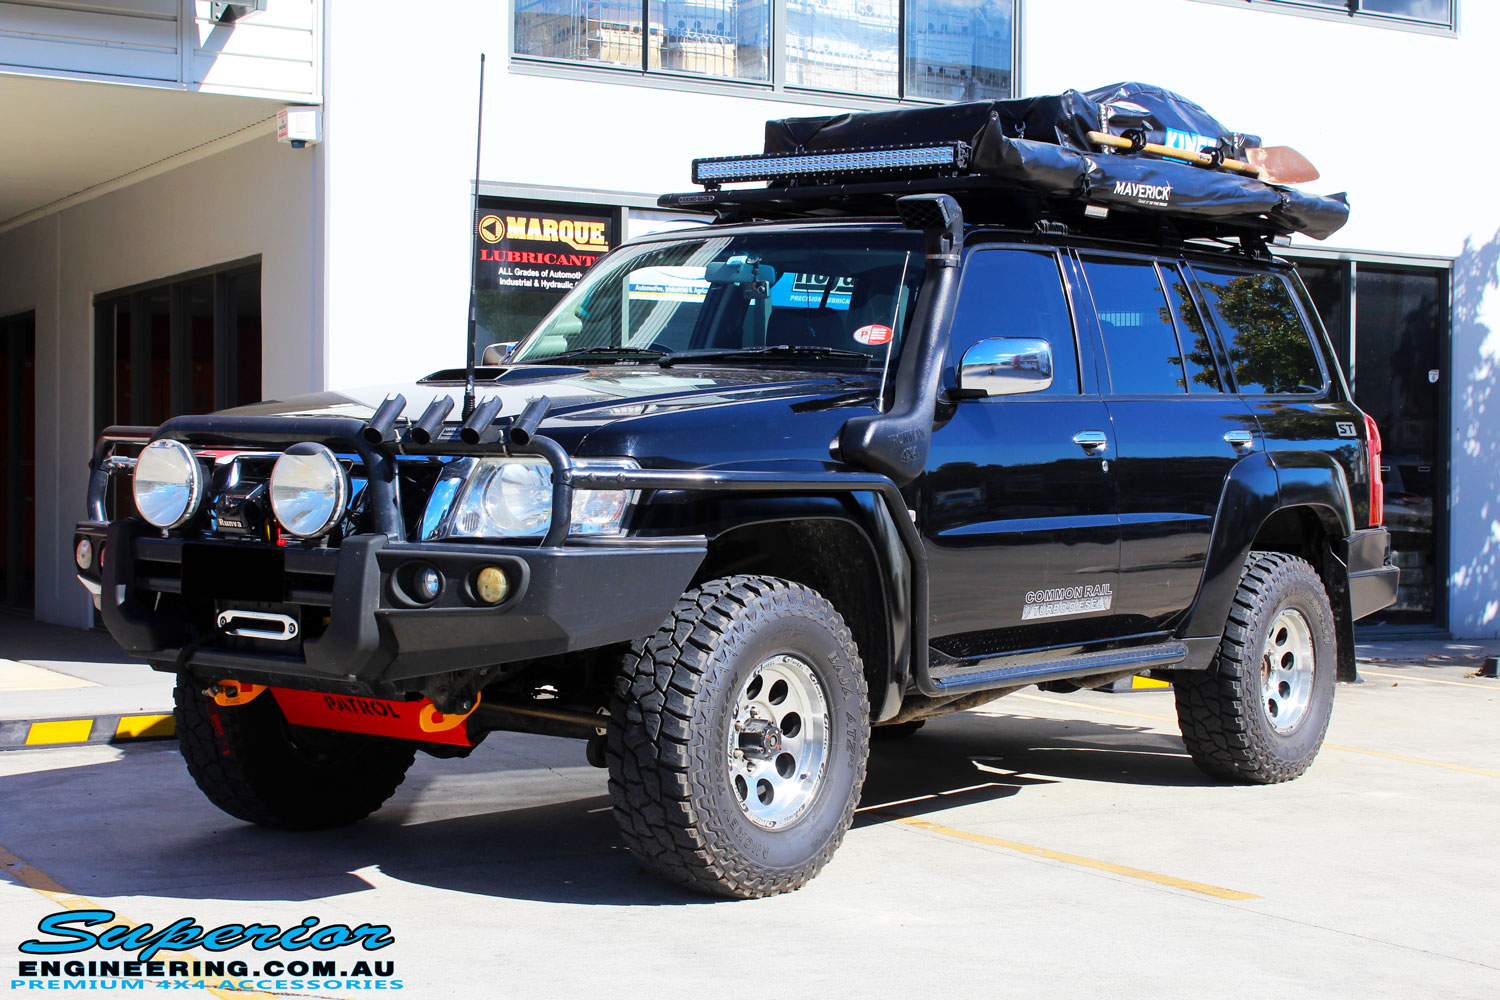 Left front side view of a Nissan GU Patrol Wagon in Black On The Hoist @ Superior Engineering Deception Bay Showroom